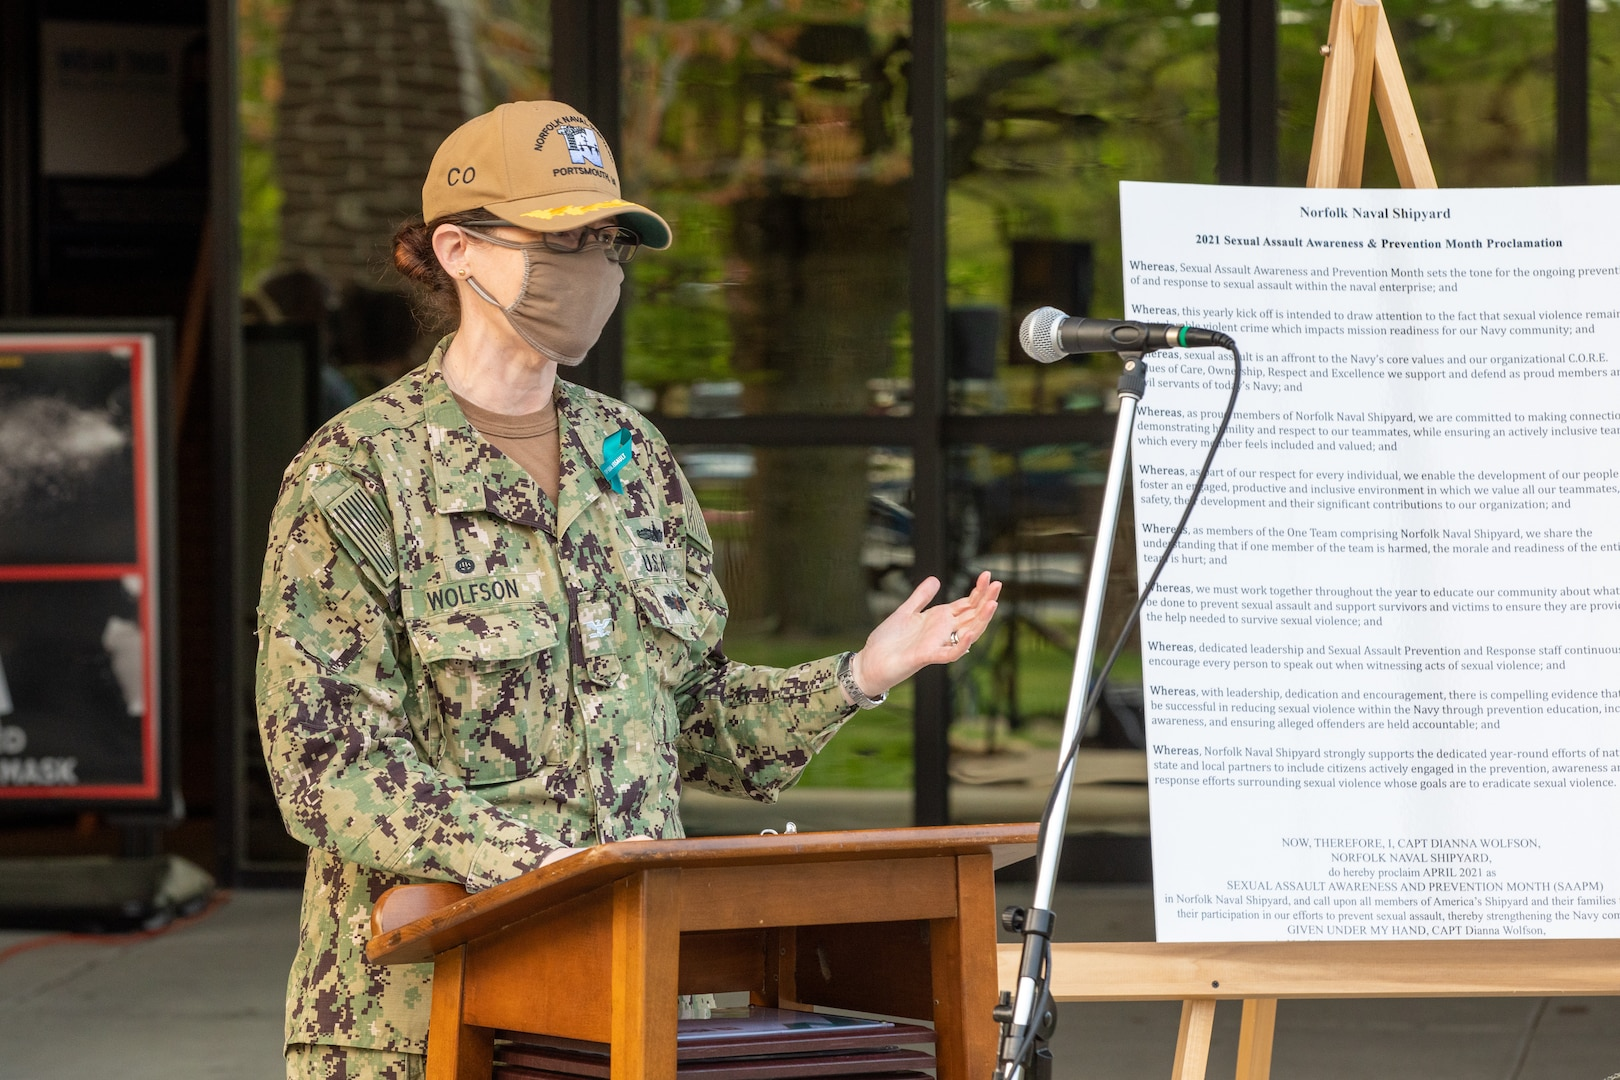 Norfolk Naval Shipyard's (NNSY) Commander Capt. Dianna Wolfson speaks during the Sexual Assault Awareness and Prevention (SAAPM) kickoff April 9.